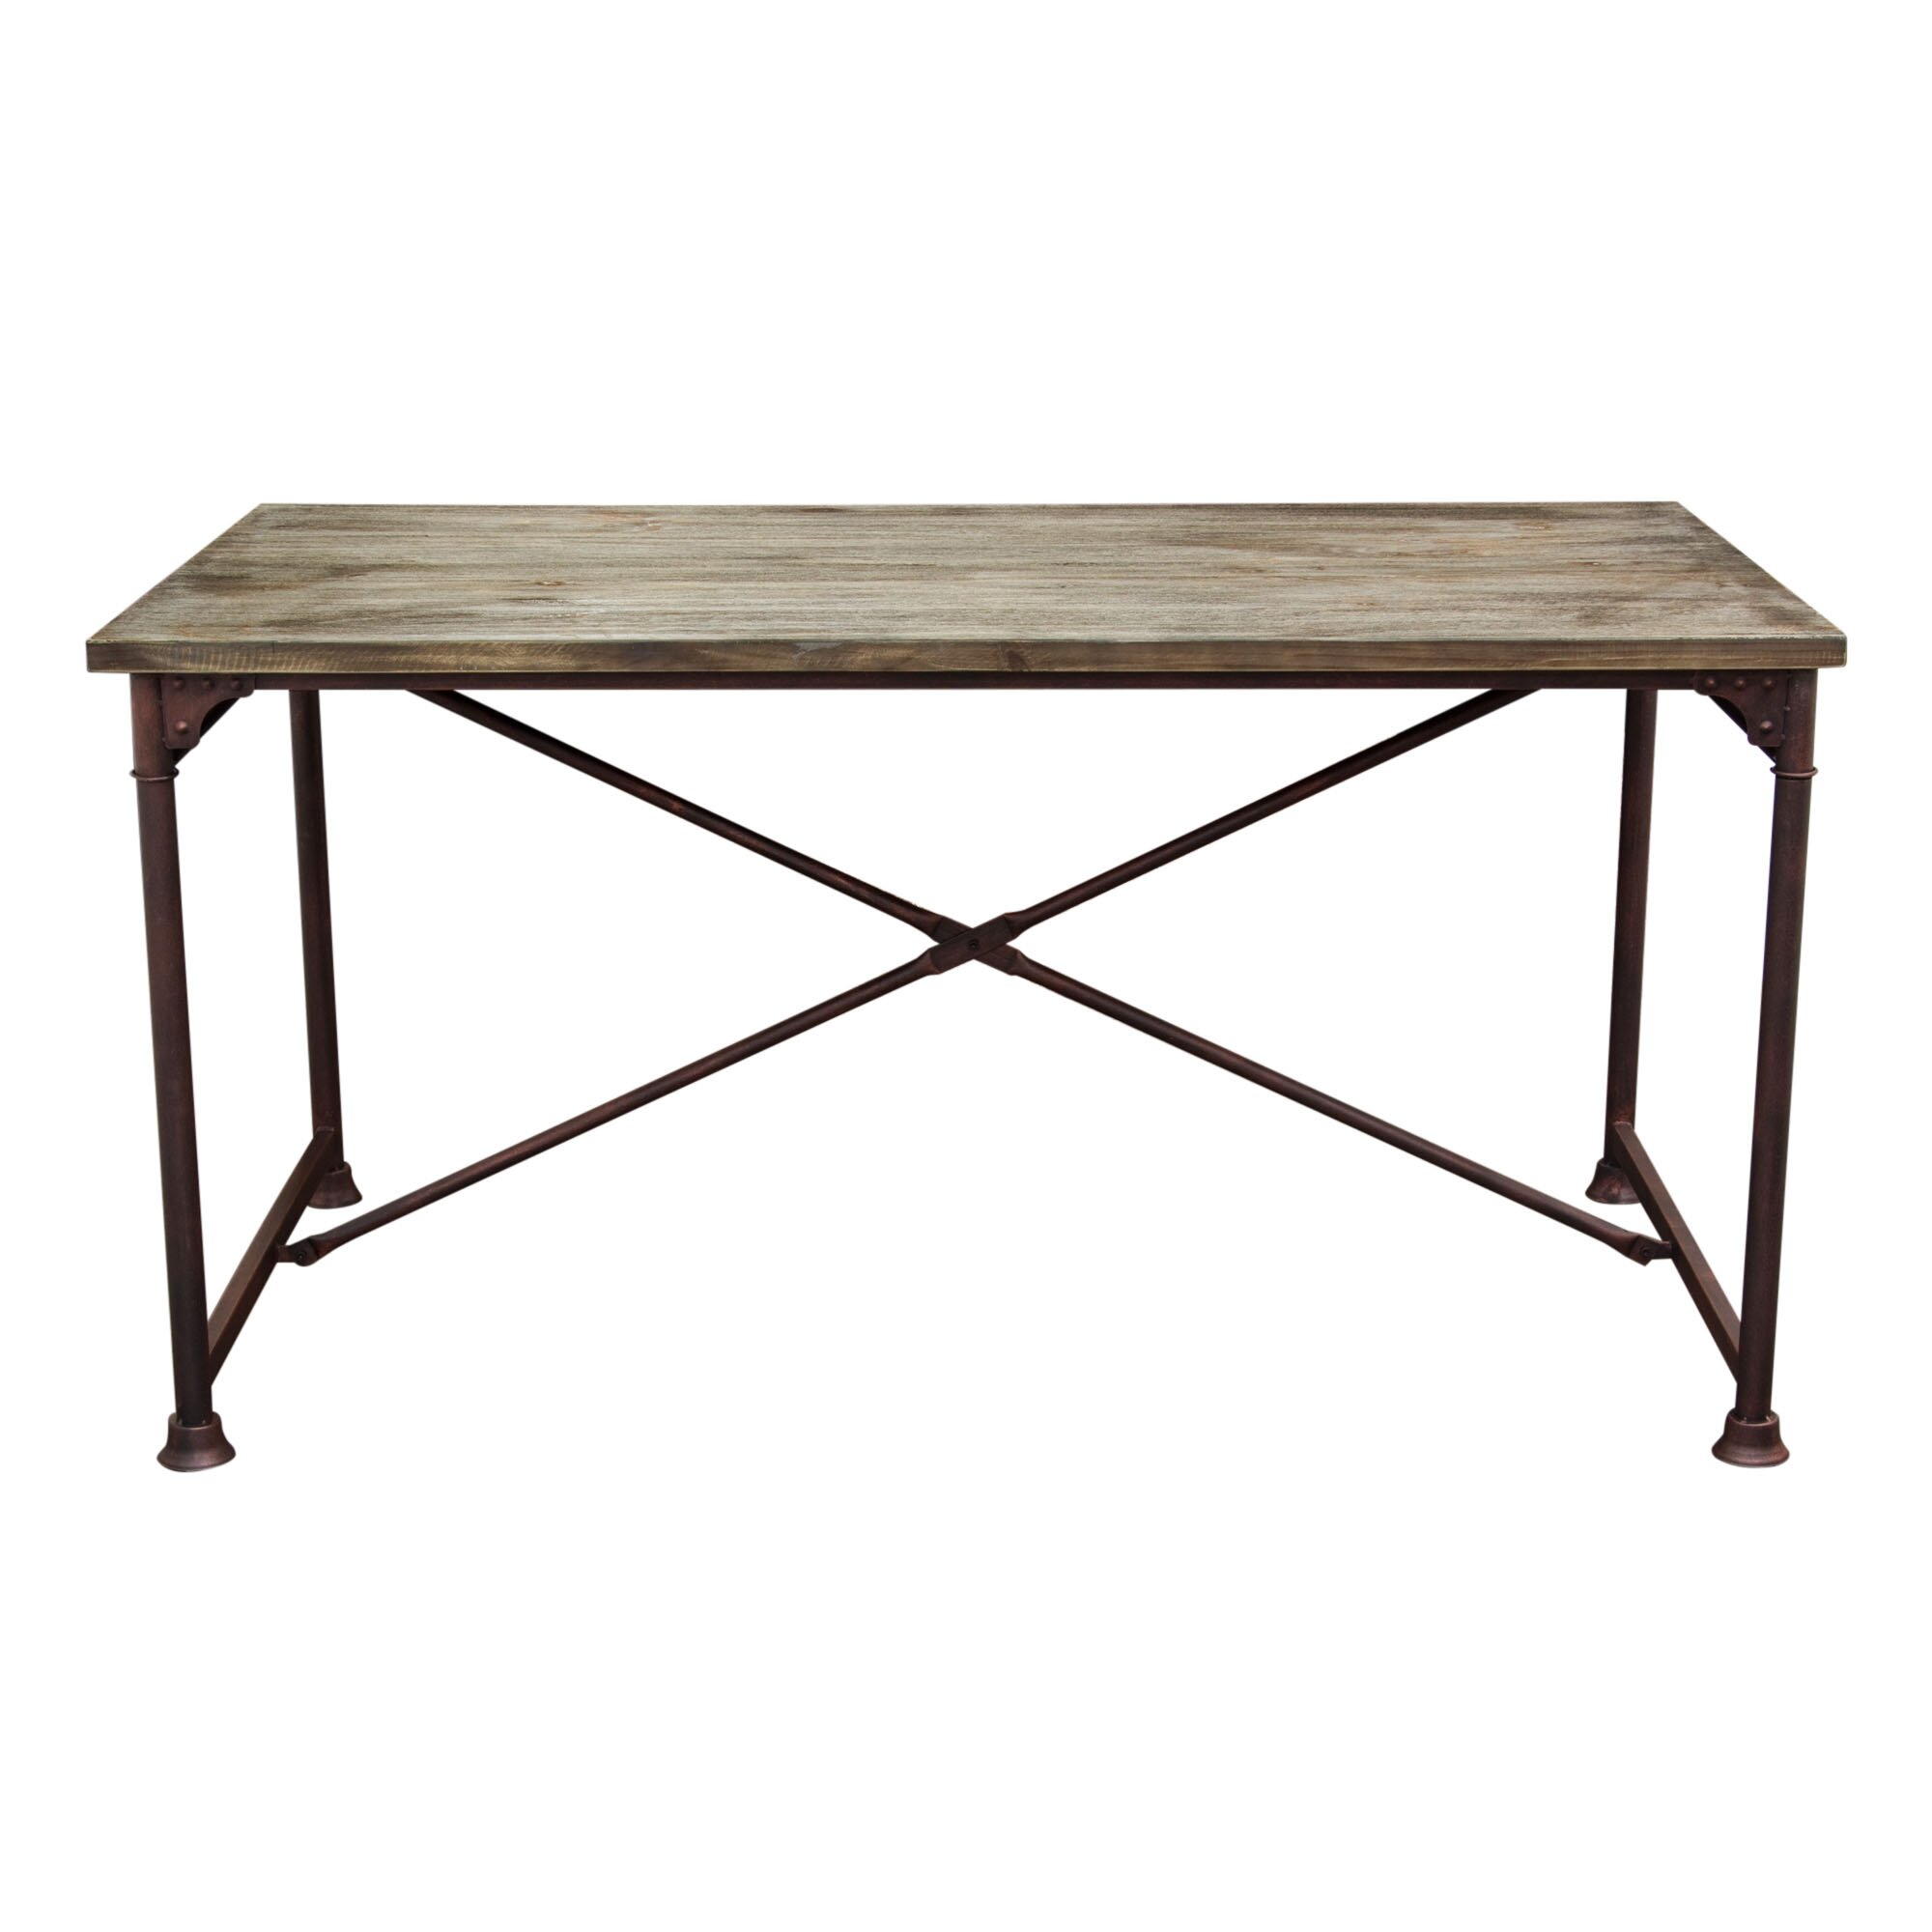 Diamond sofa dixon dining table reviews wayfair for Dining table for sofa